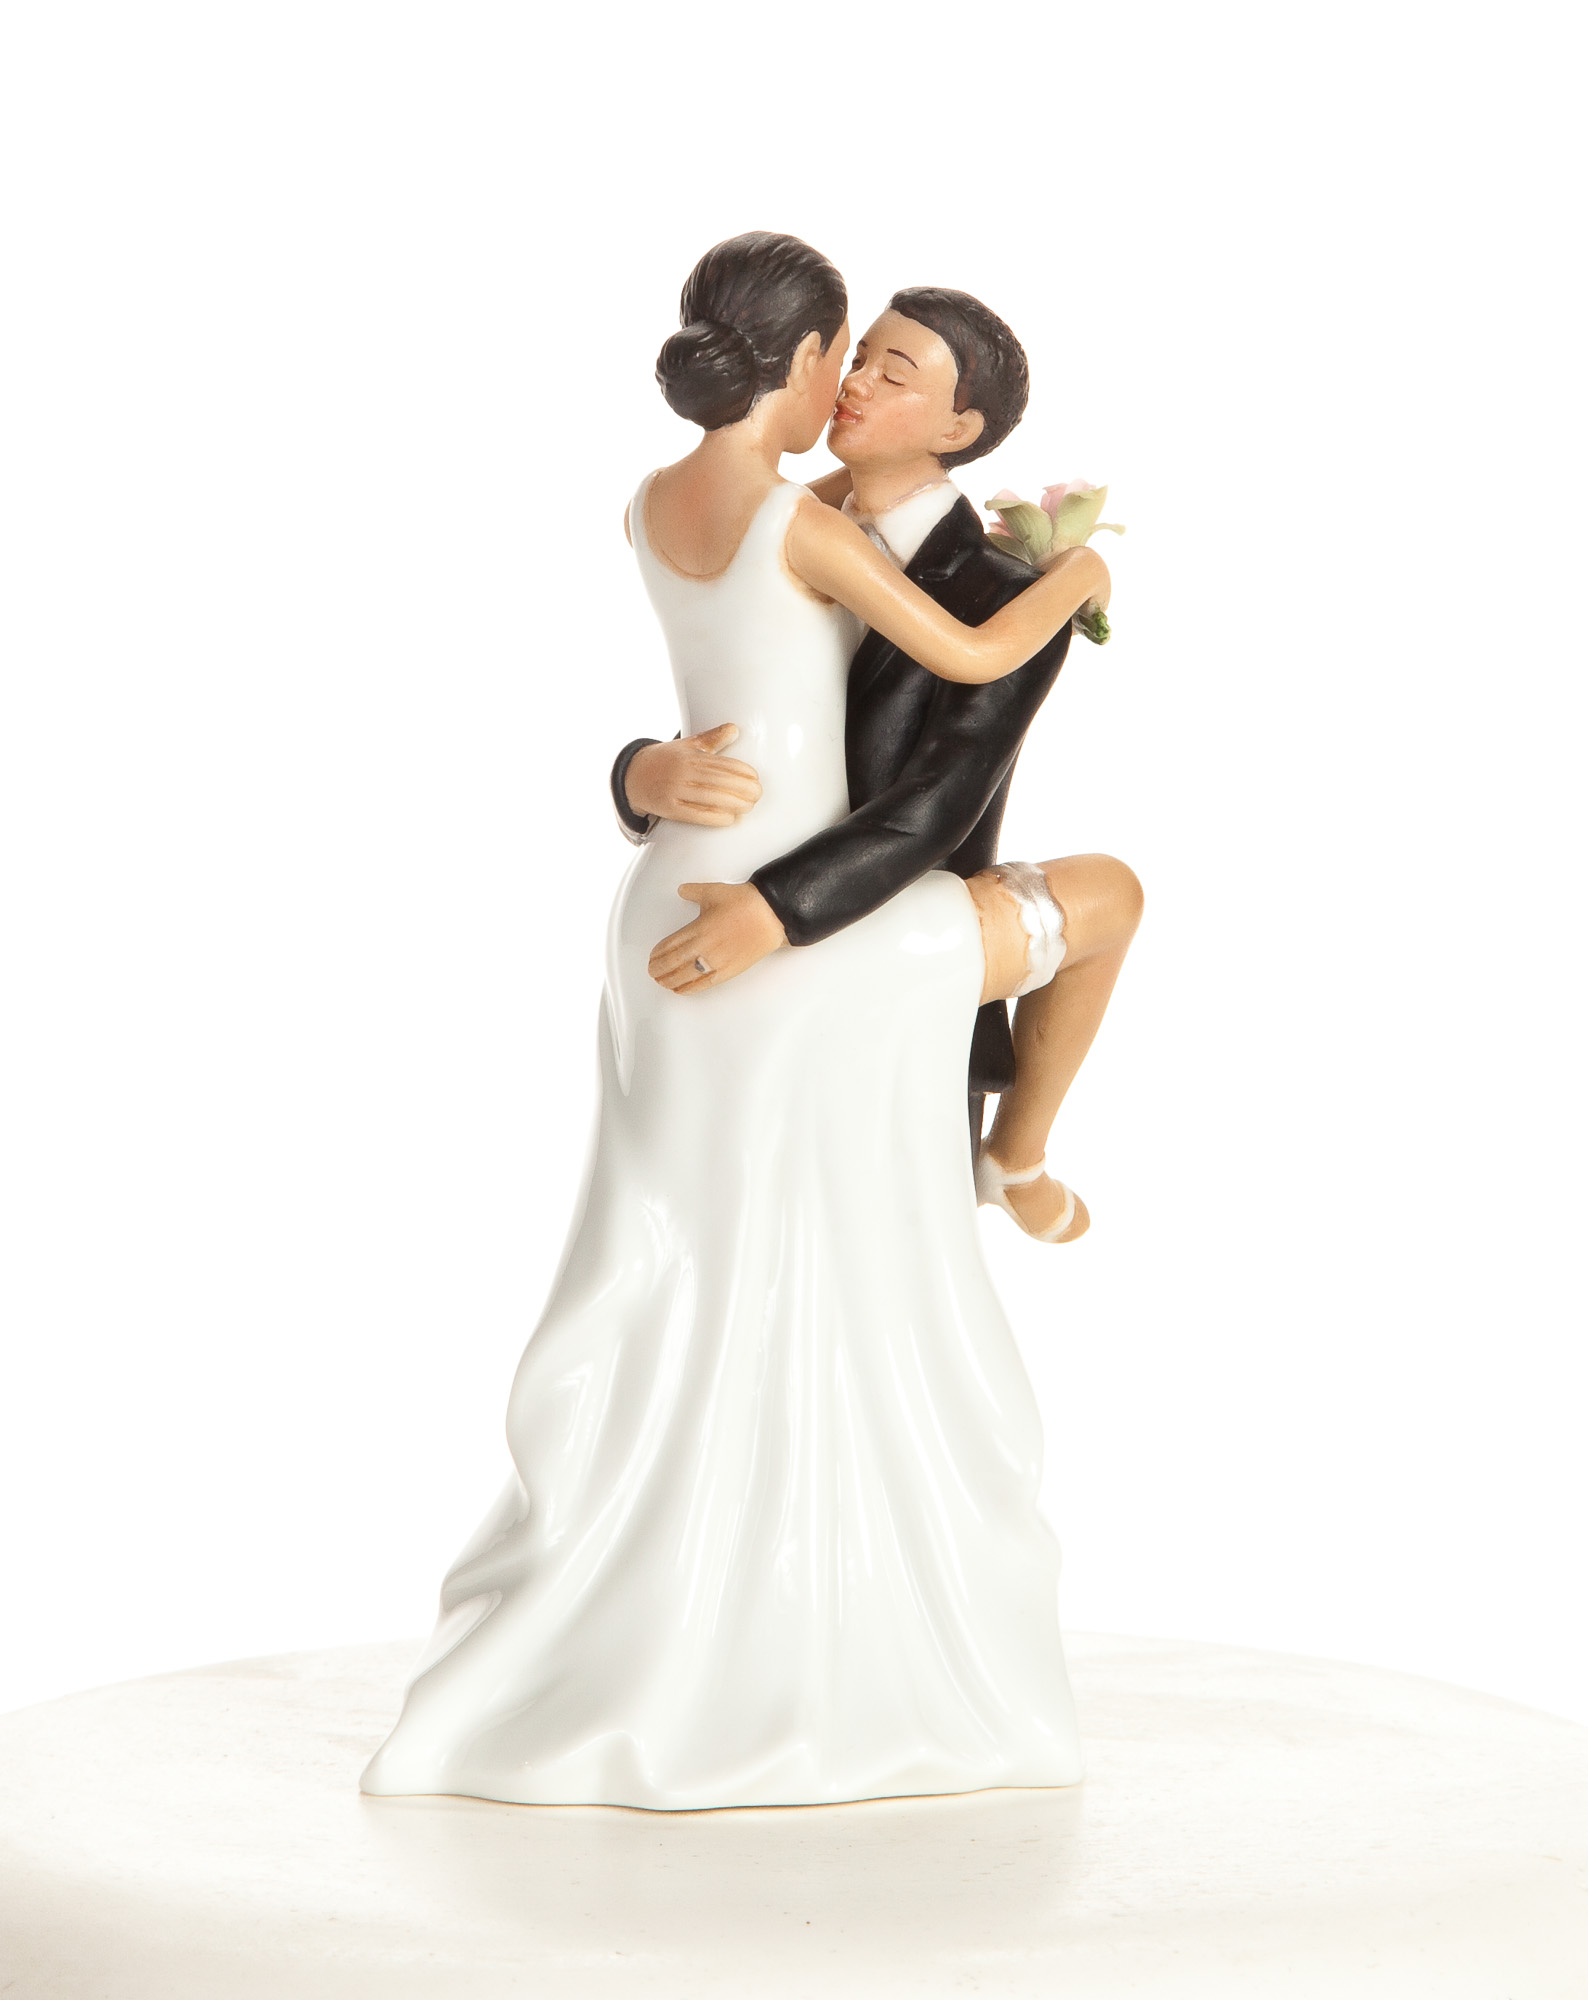 u0026quot funny sexy u0026quot  african american wedding bride and groom cake topper figurine